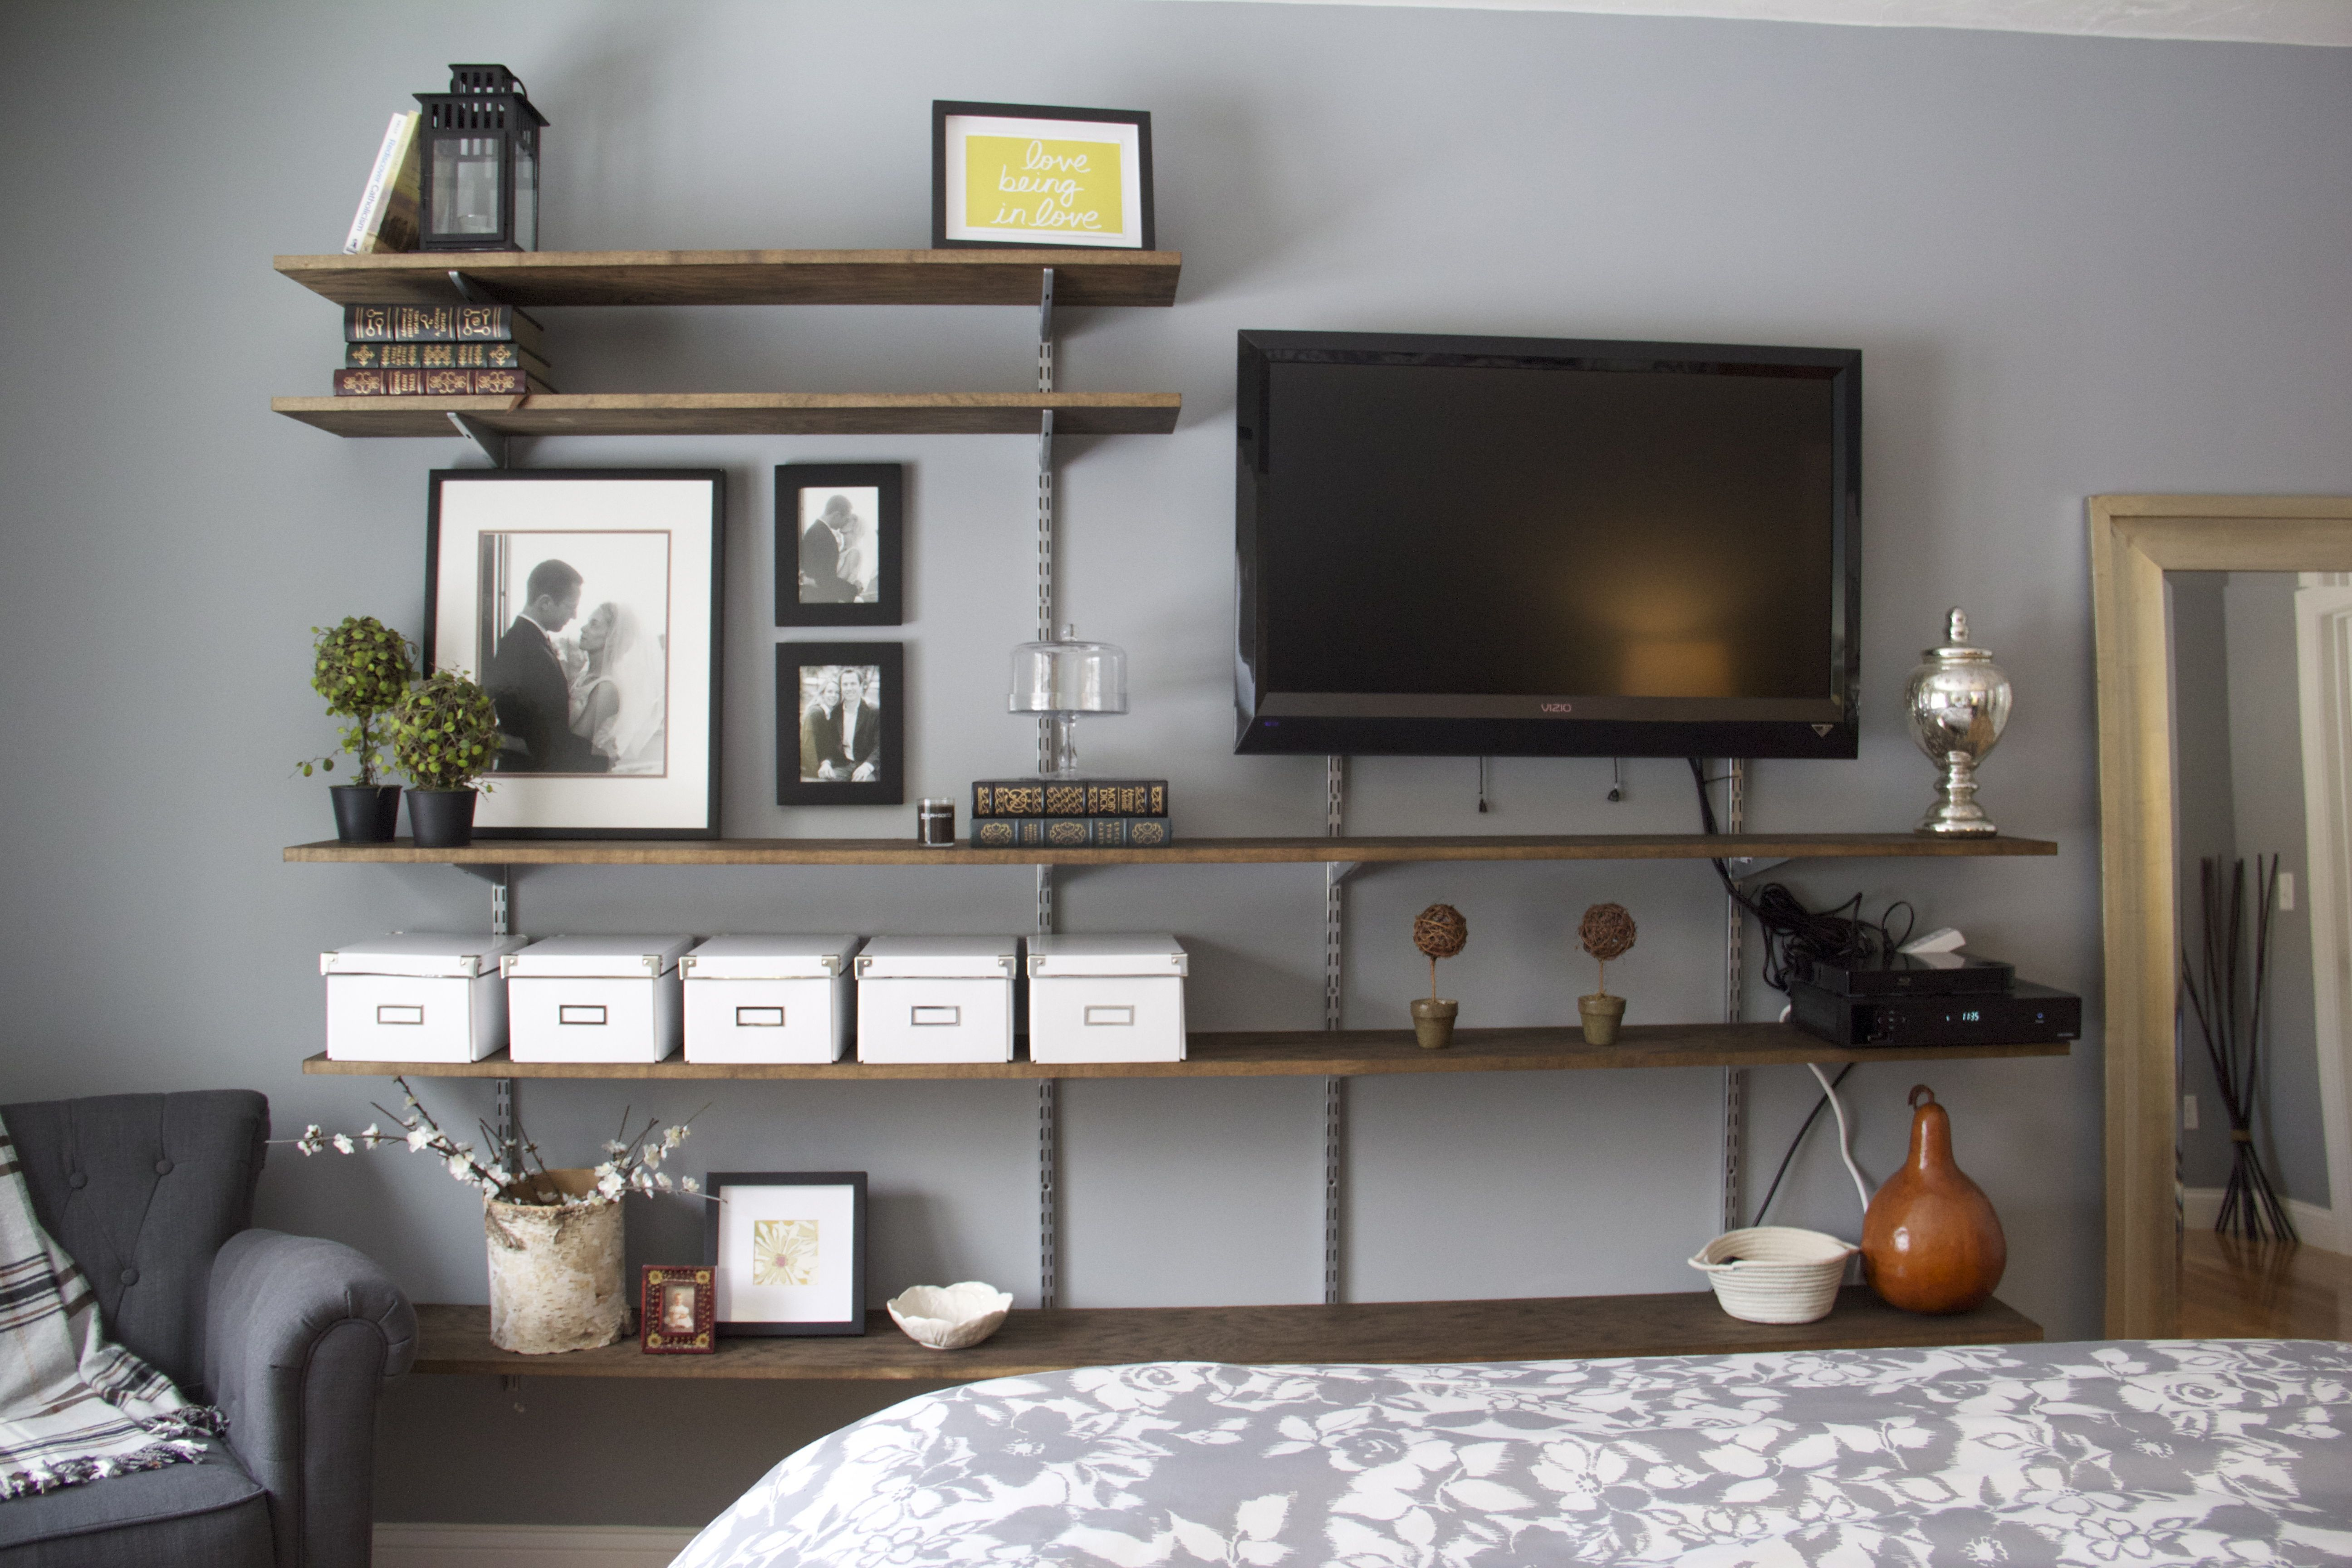 Merveilleux 50 Cool TV Stand Designs For Your Home Tv Stand Ideas Diy, Tv Stand Ideas  For Living Room, Tv Stand Ideas Bedroom, Tv Stand Ideas Black, Tv Stand  Ideas ...